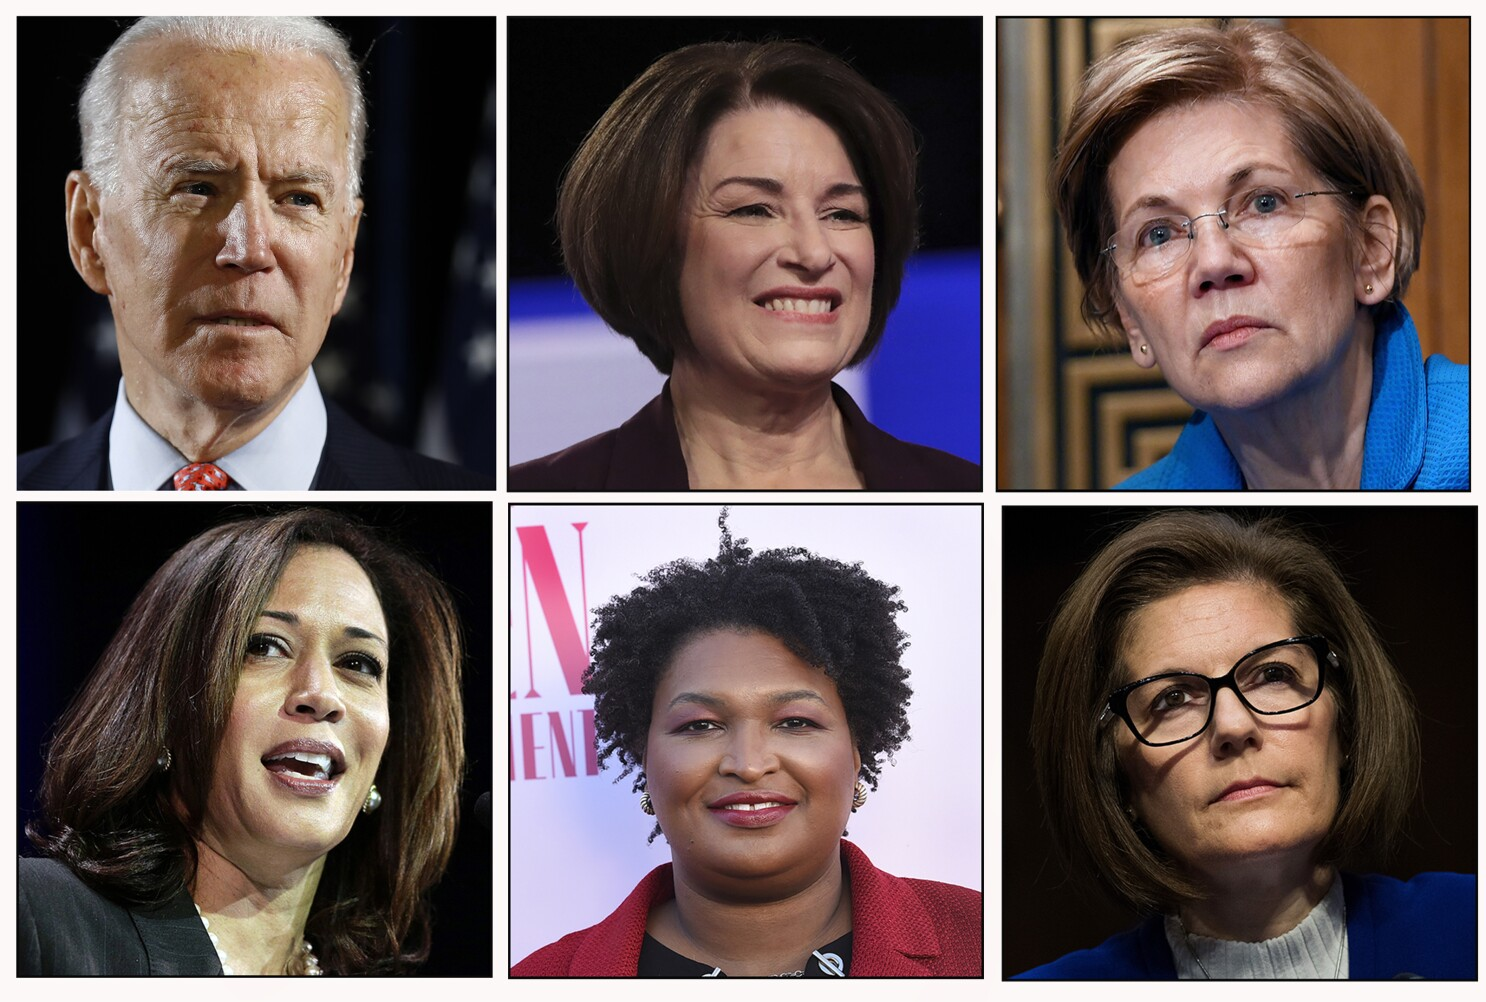 Biden Says He Wants A Female Running Mate Who Los Angeles Times My wife, jill, as you know, and doug emhoff, uh, kamala's wife, were there. biden says he wants a female running